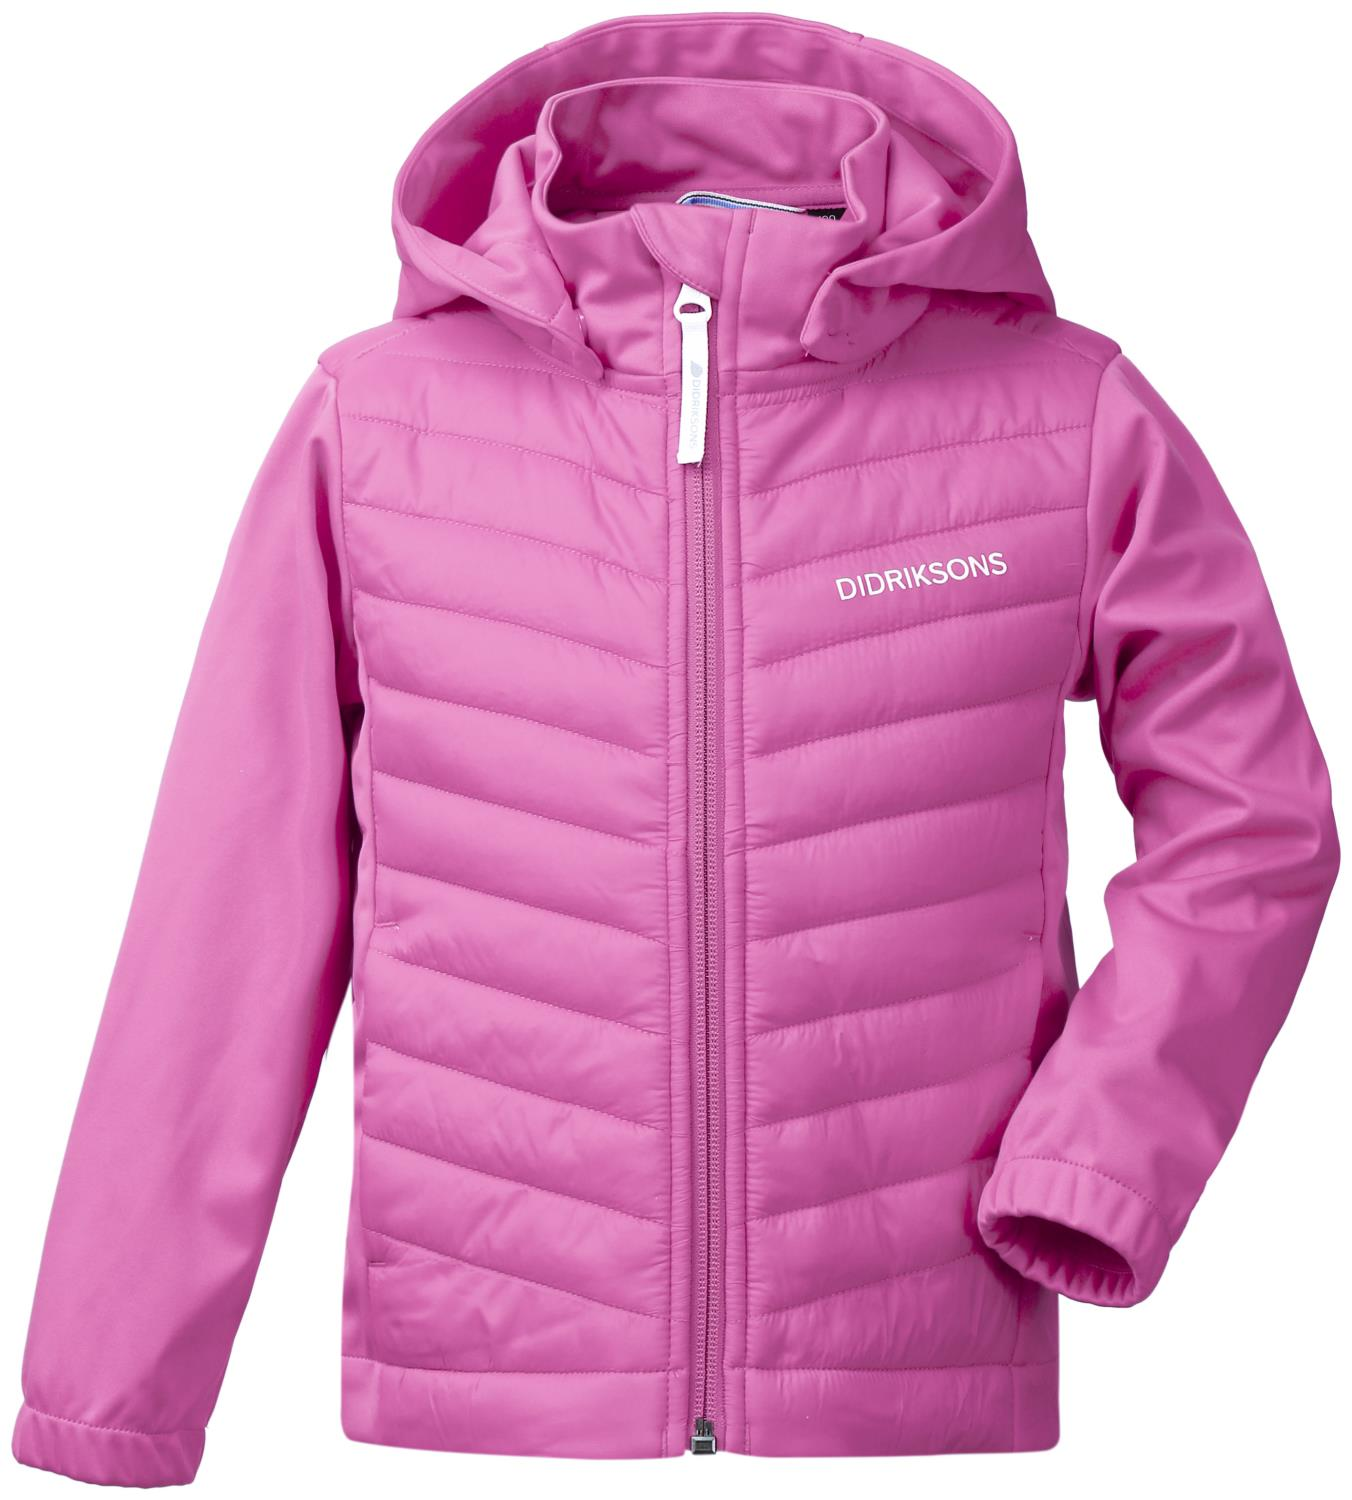 Didriksons Briske kids jkt purple